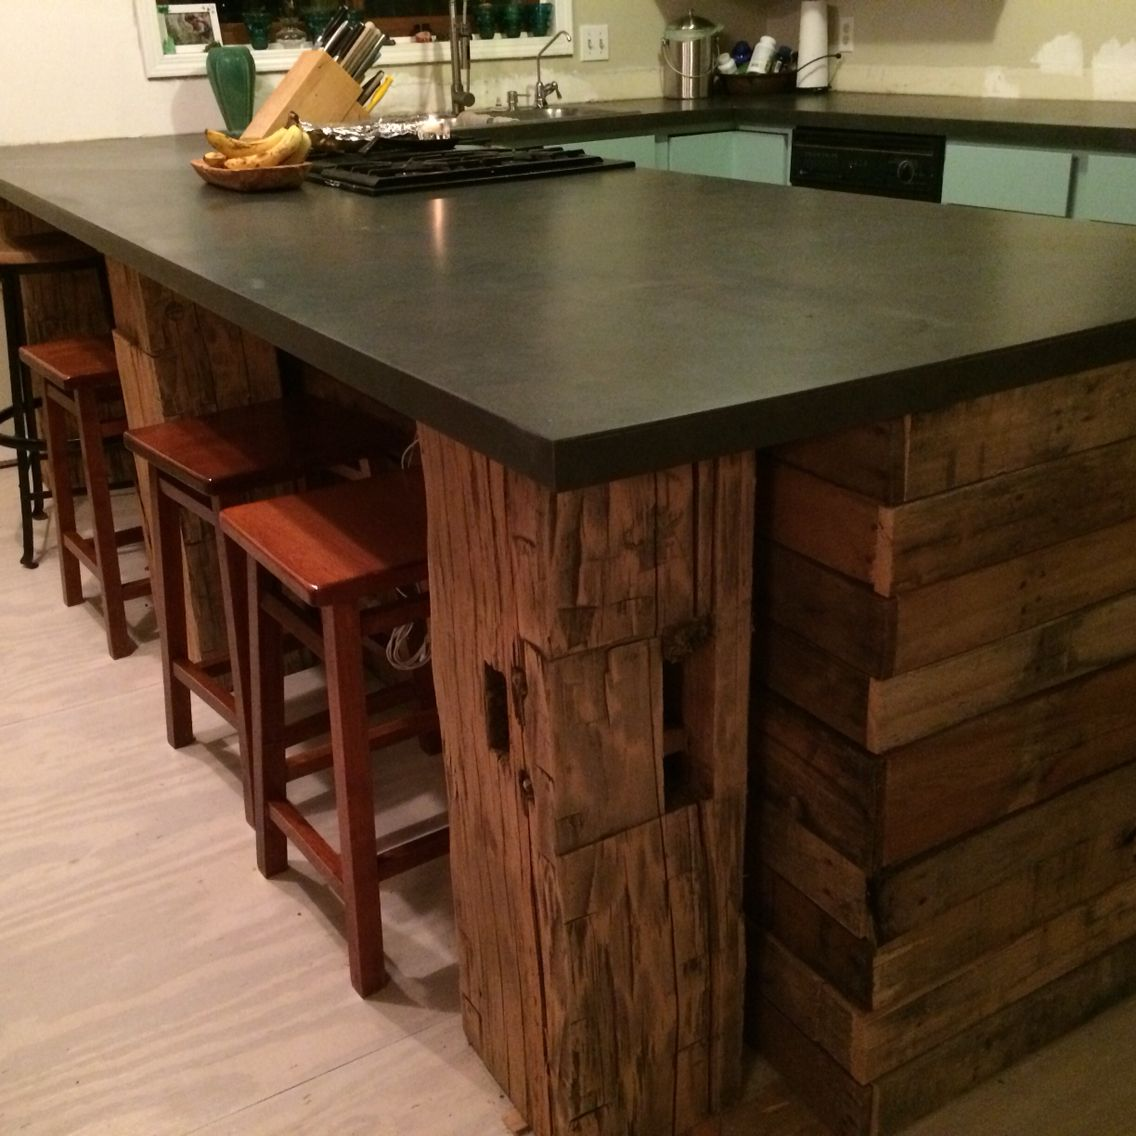 Barn Beam Pallet Wood Kitchen With Slate Laminate Counter